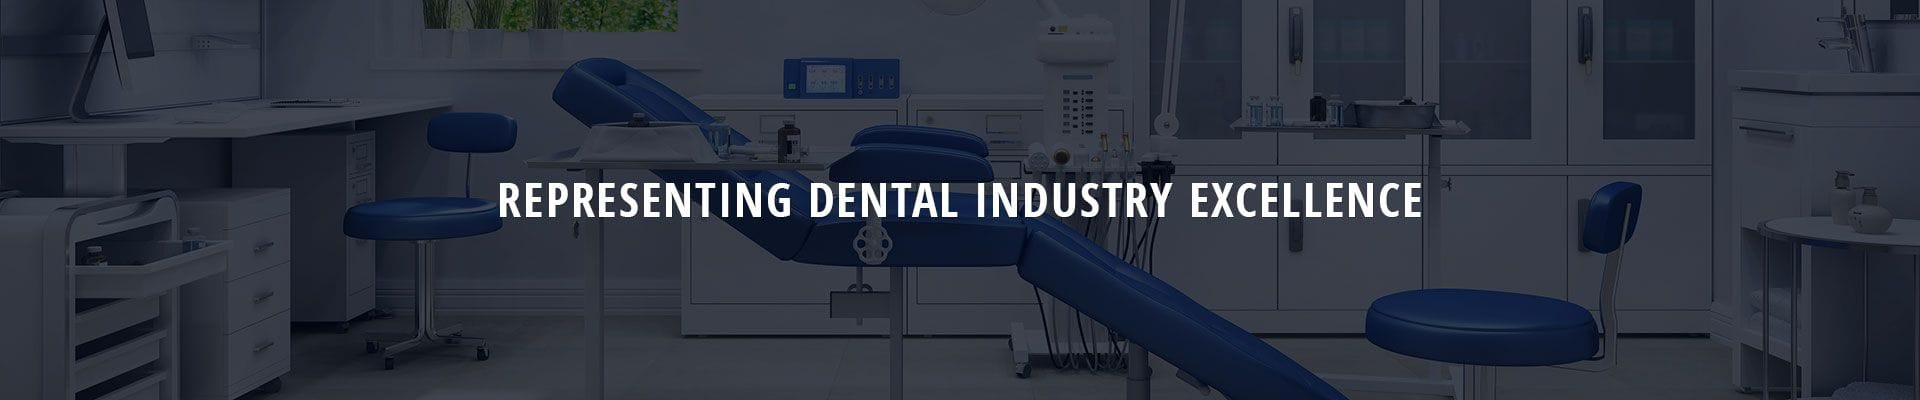 Dental Health Services Reports | Australian Dental Industry Association